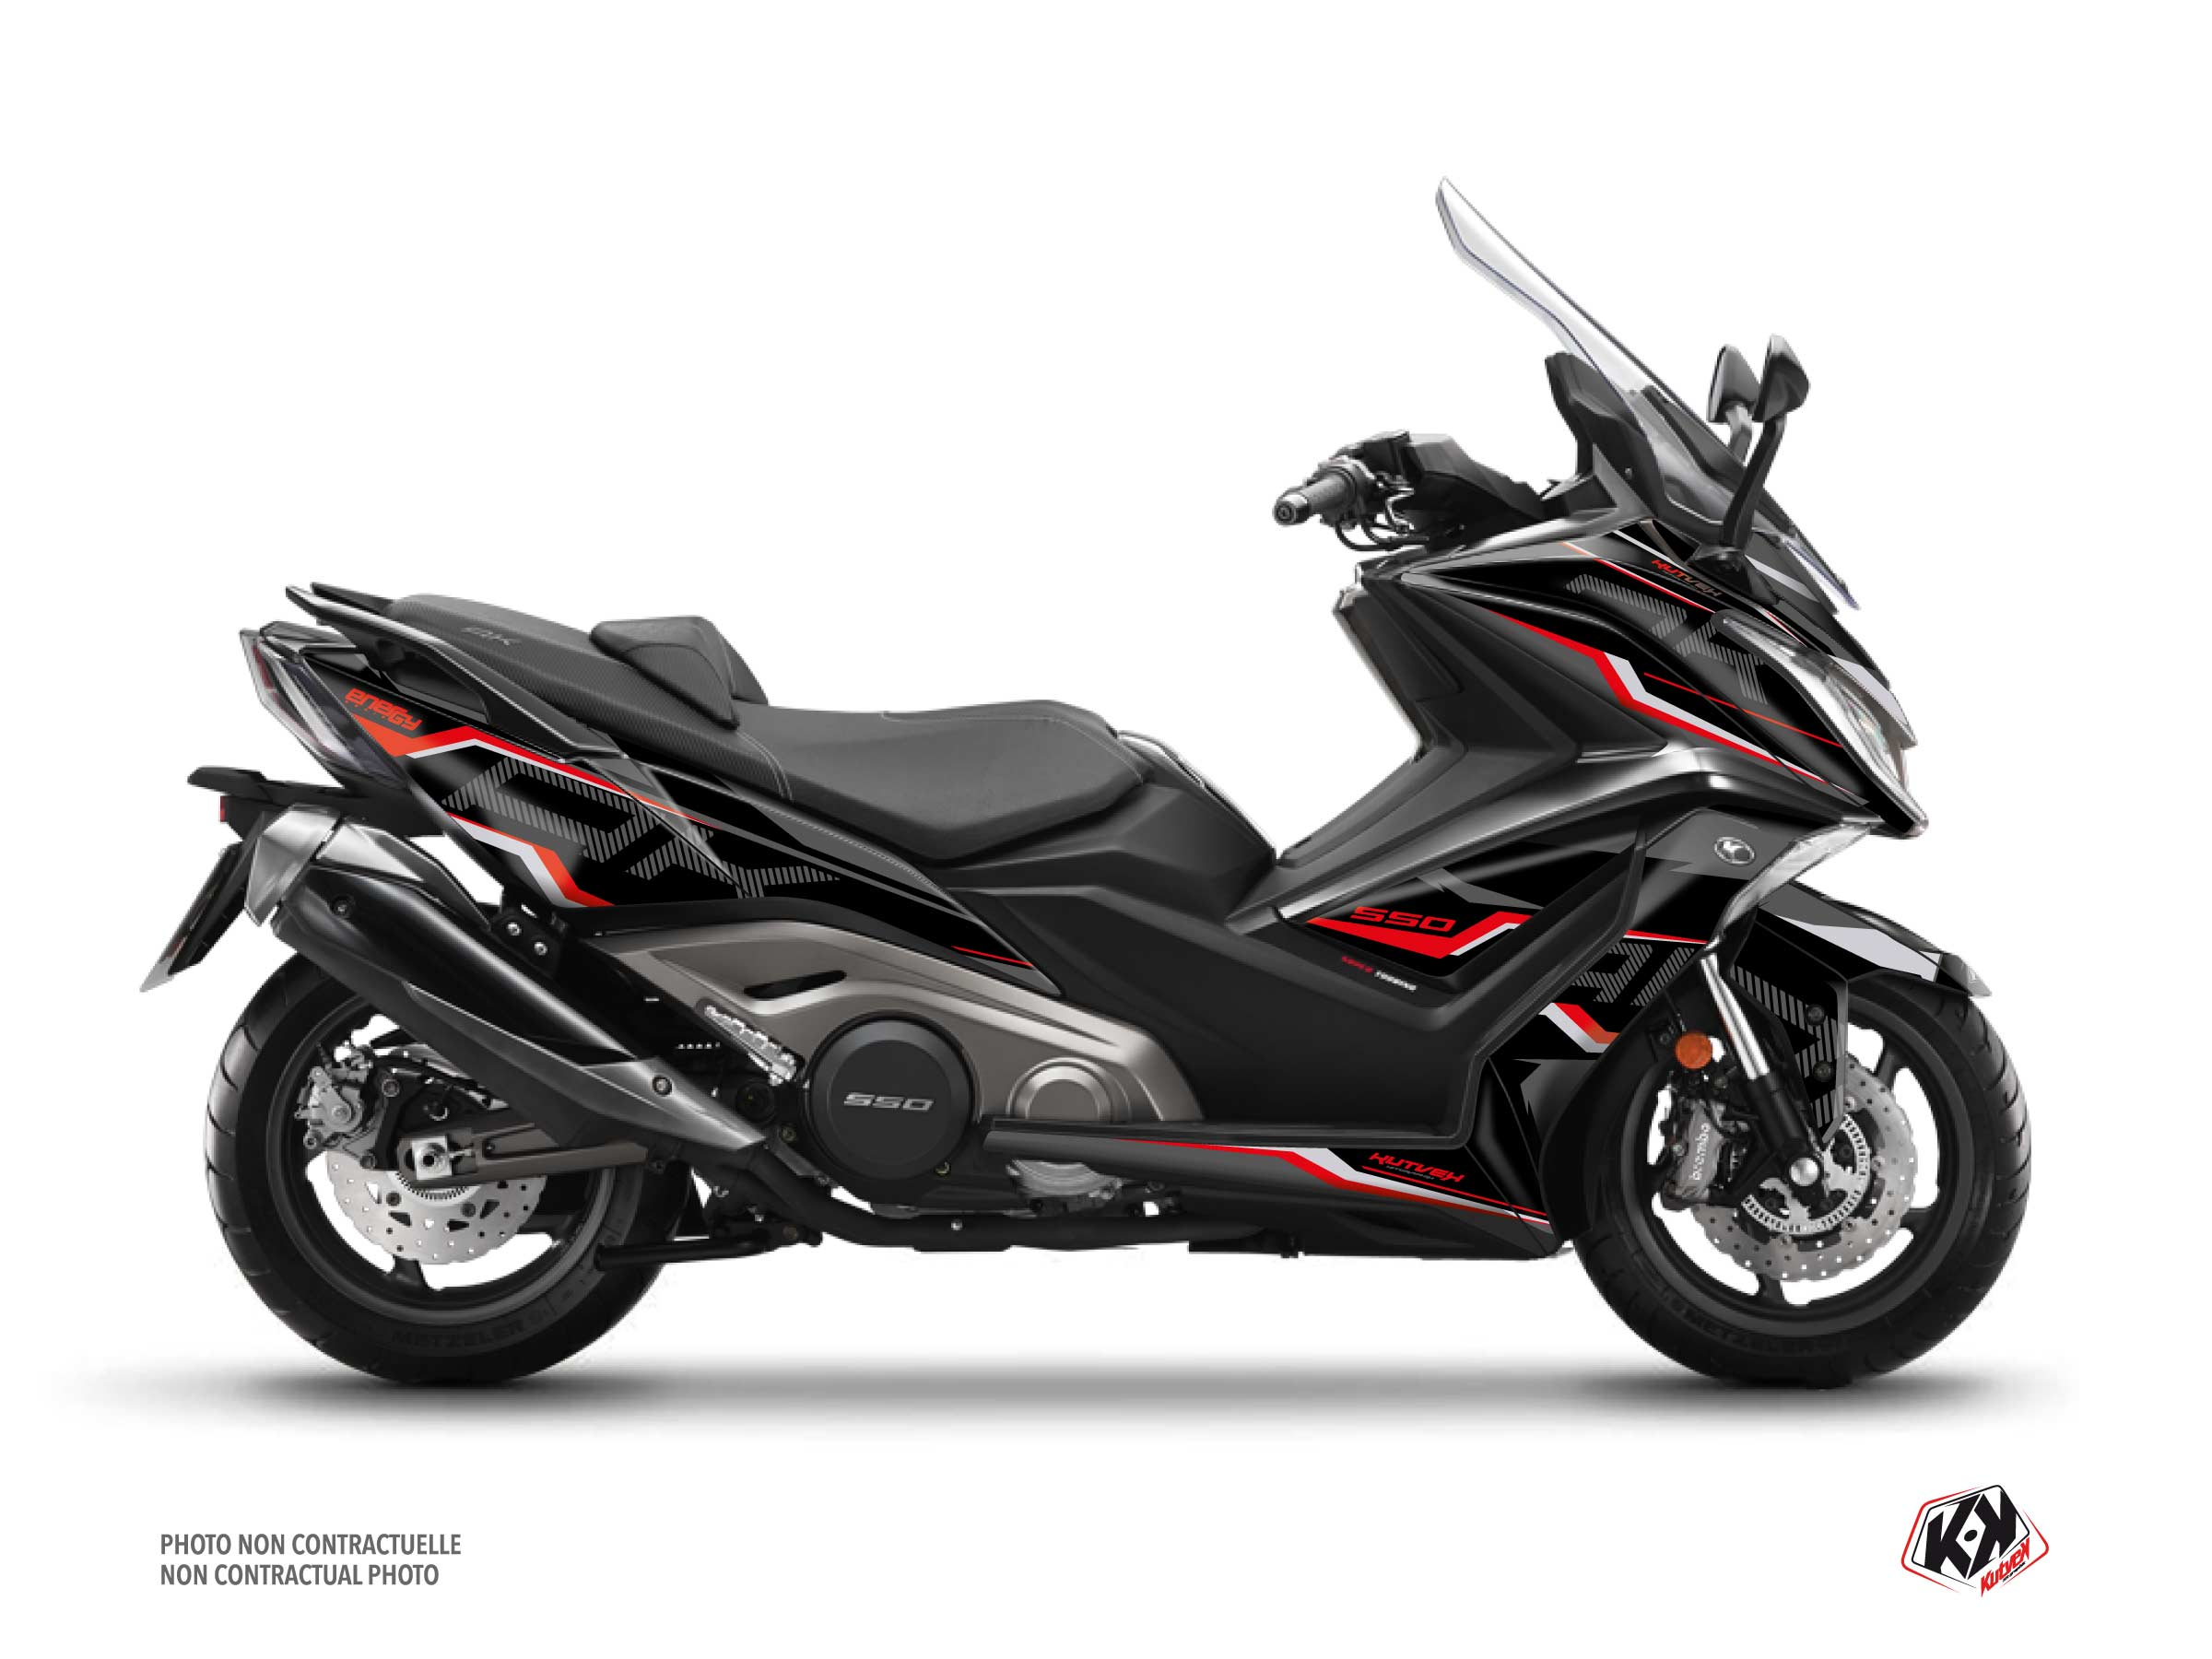 Kymco AK 550 Maxiscooter Energy Graphic Kit Black Red